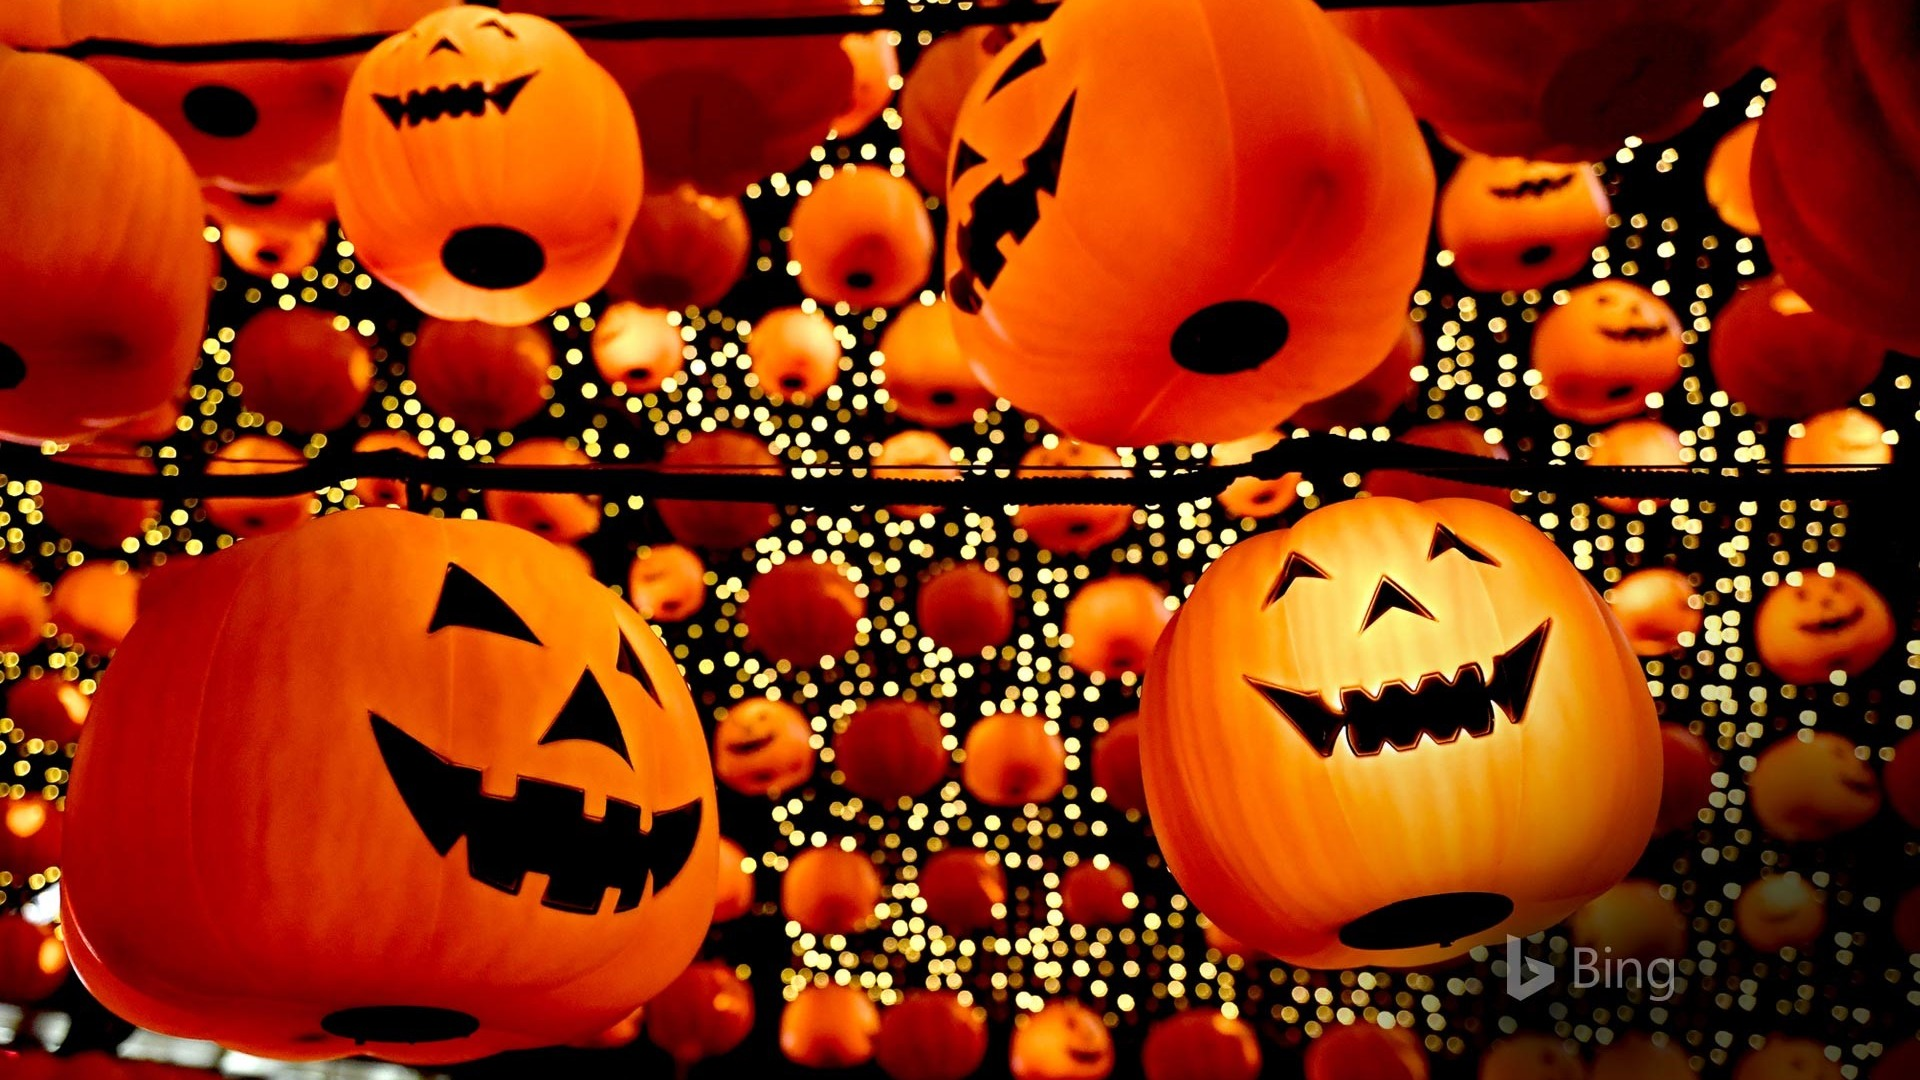 Used Auto Glass >> China Liaoning Halloween decoration 2017 Bing Wallpaper Preview | 10wallpaper.com